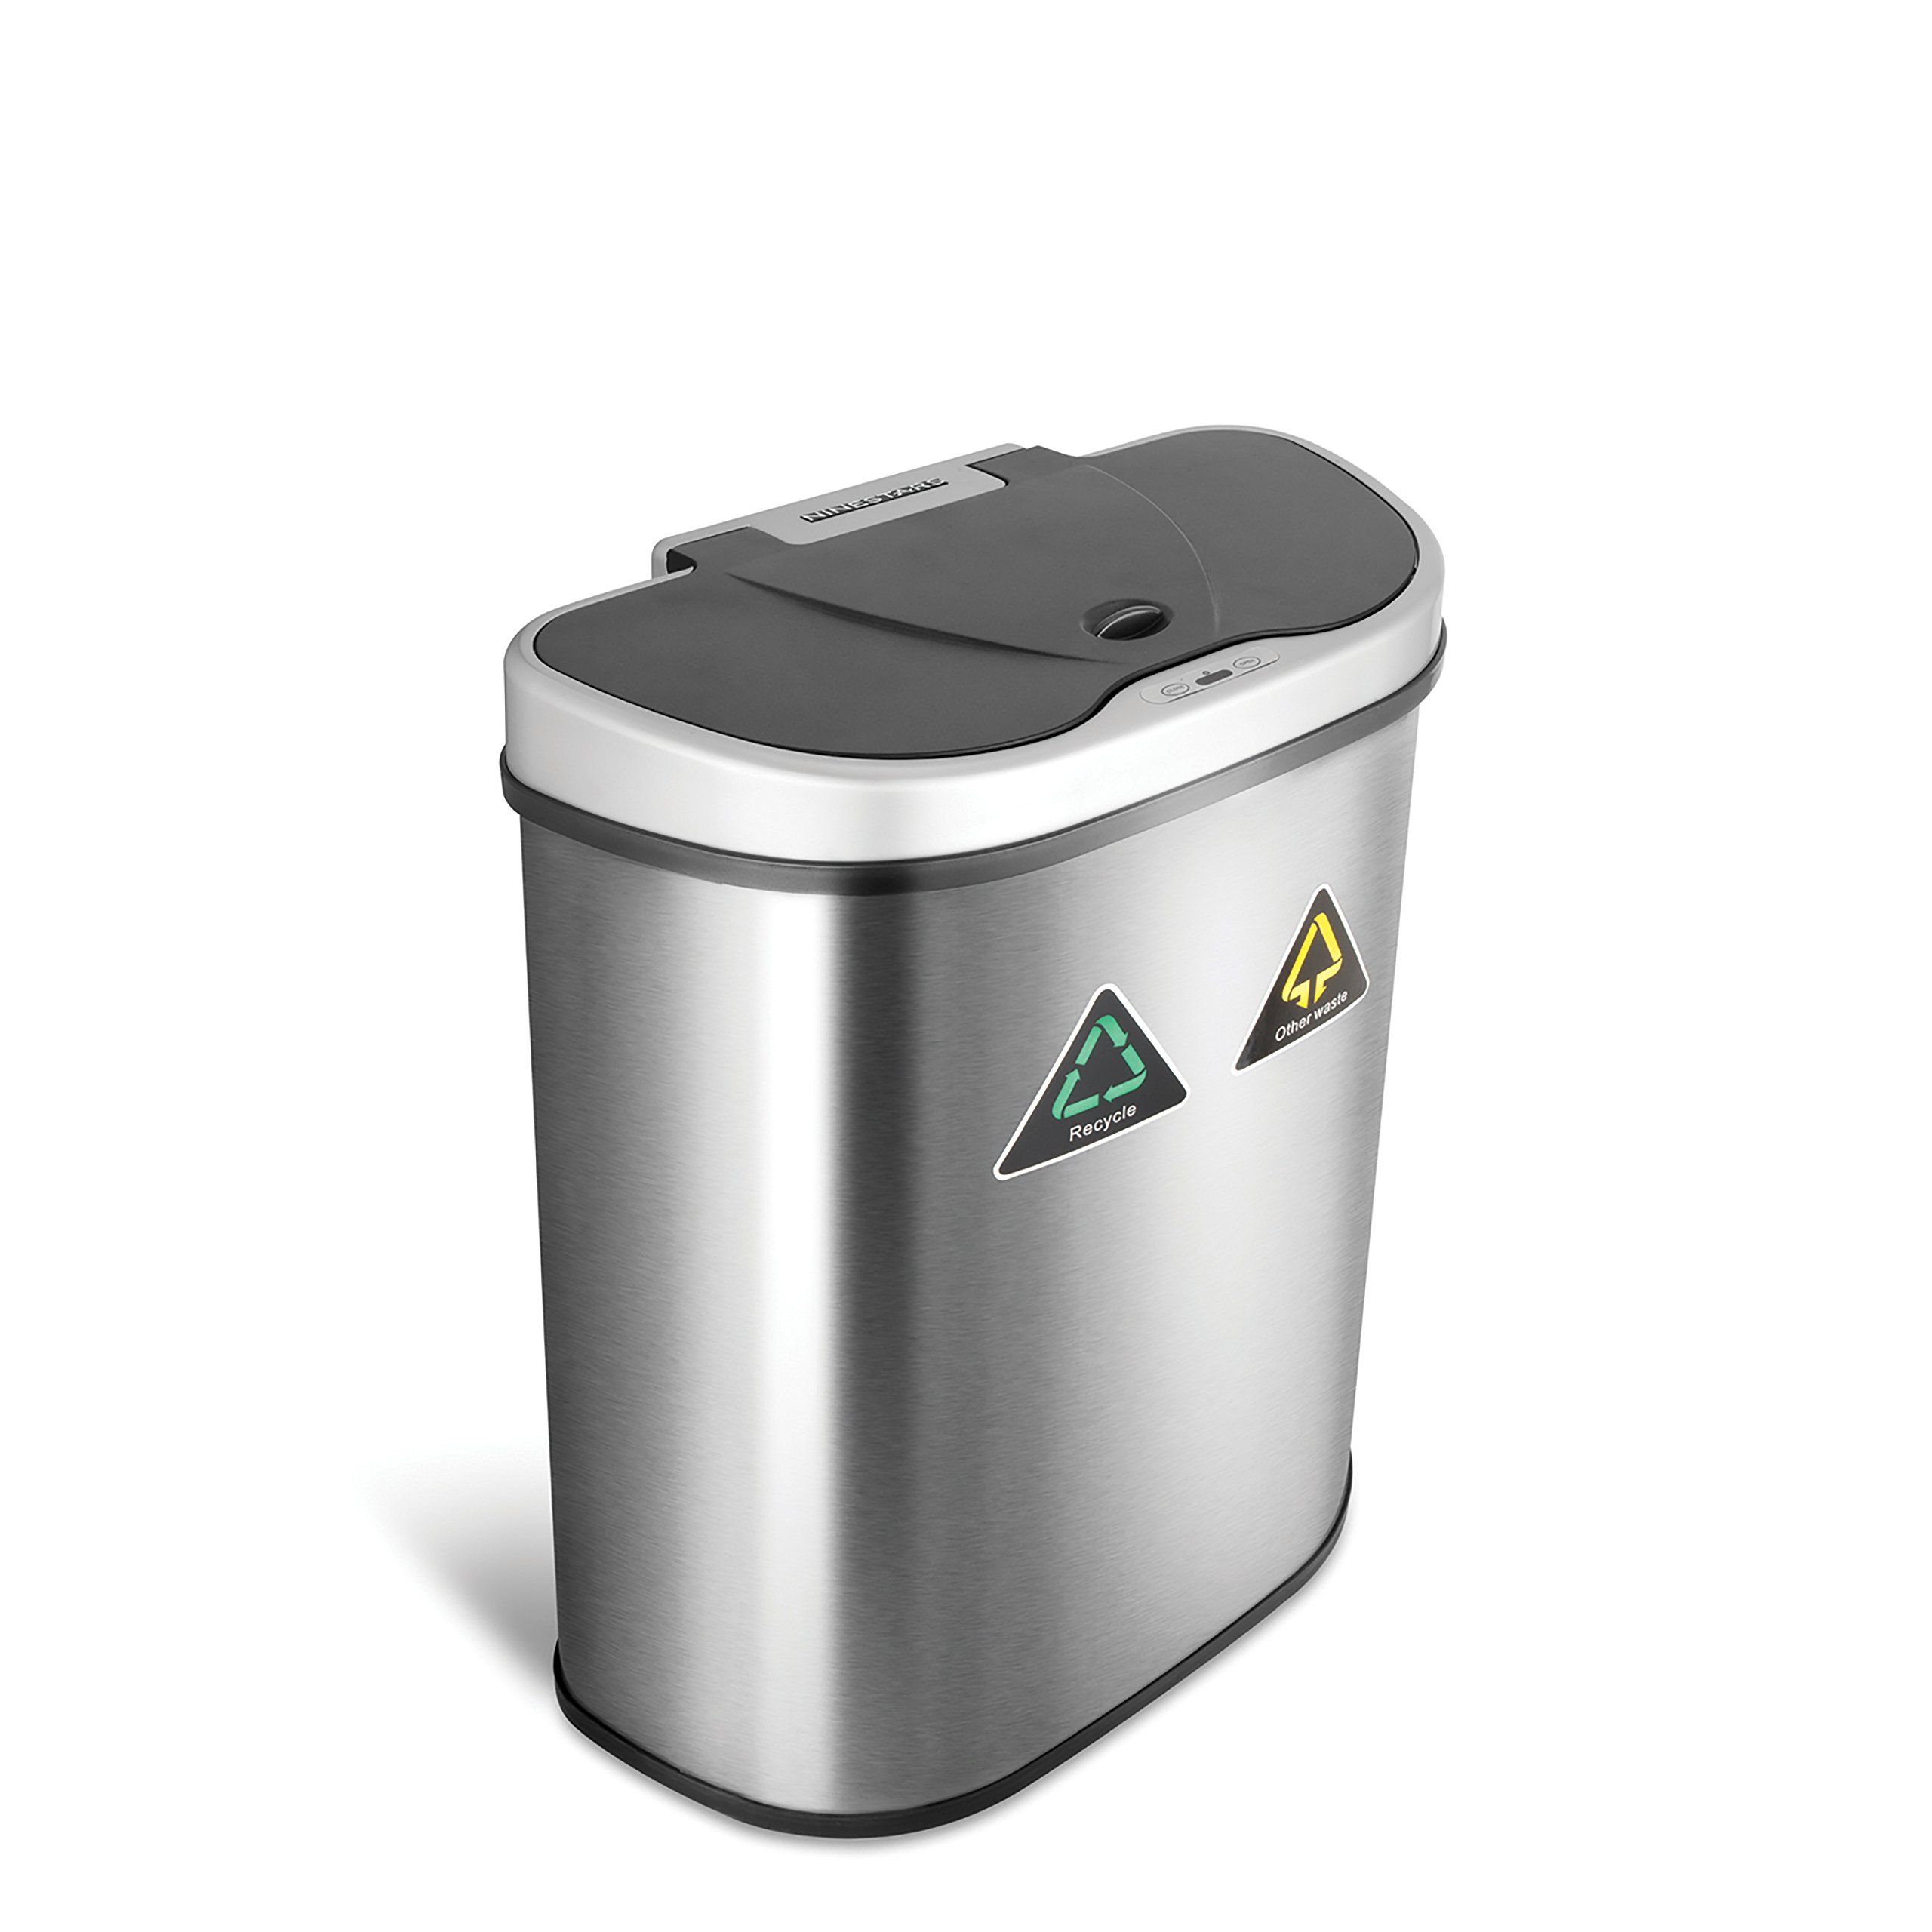 NINESTARS Automatic Touchless Infrared Motion Sensor Trash Can/Recycler with D Shape Silver/Black Lid & Stainless Base, 18 Gal, Stainless Steel by Ninestars